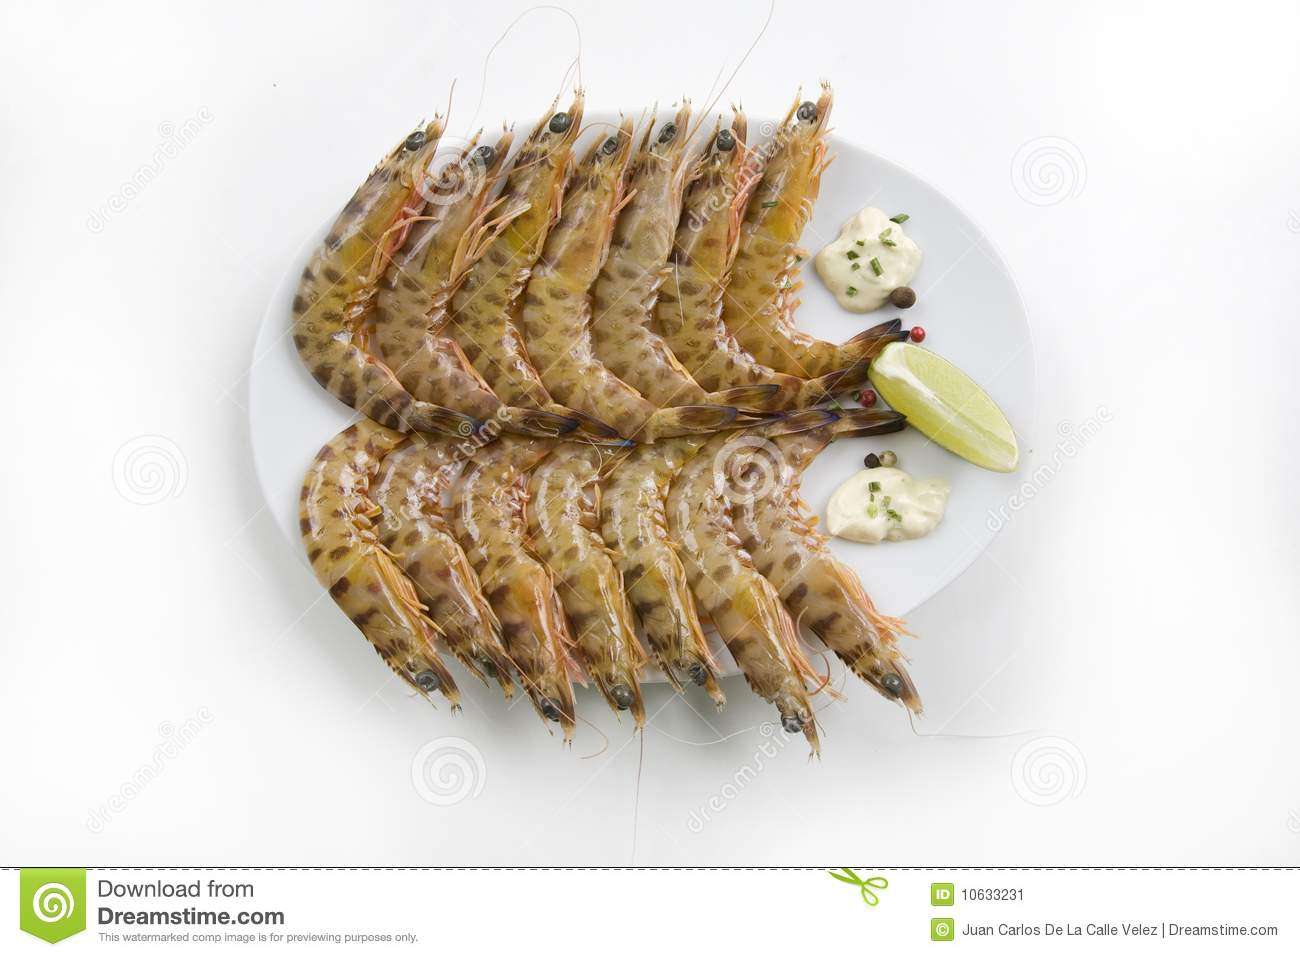 Fresh Tiger Prawns Stock Image - Image: 10633231